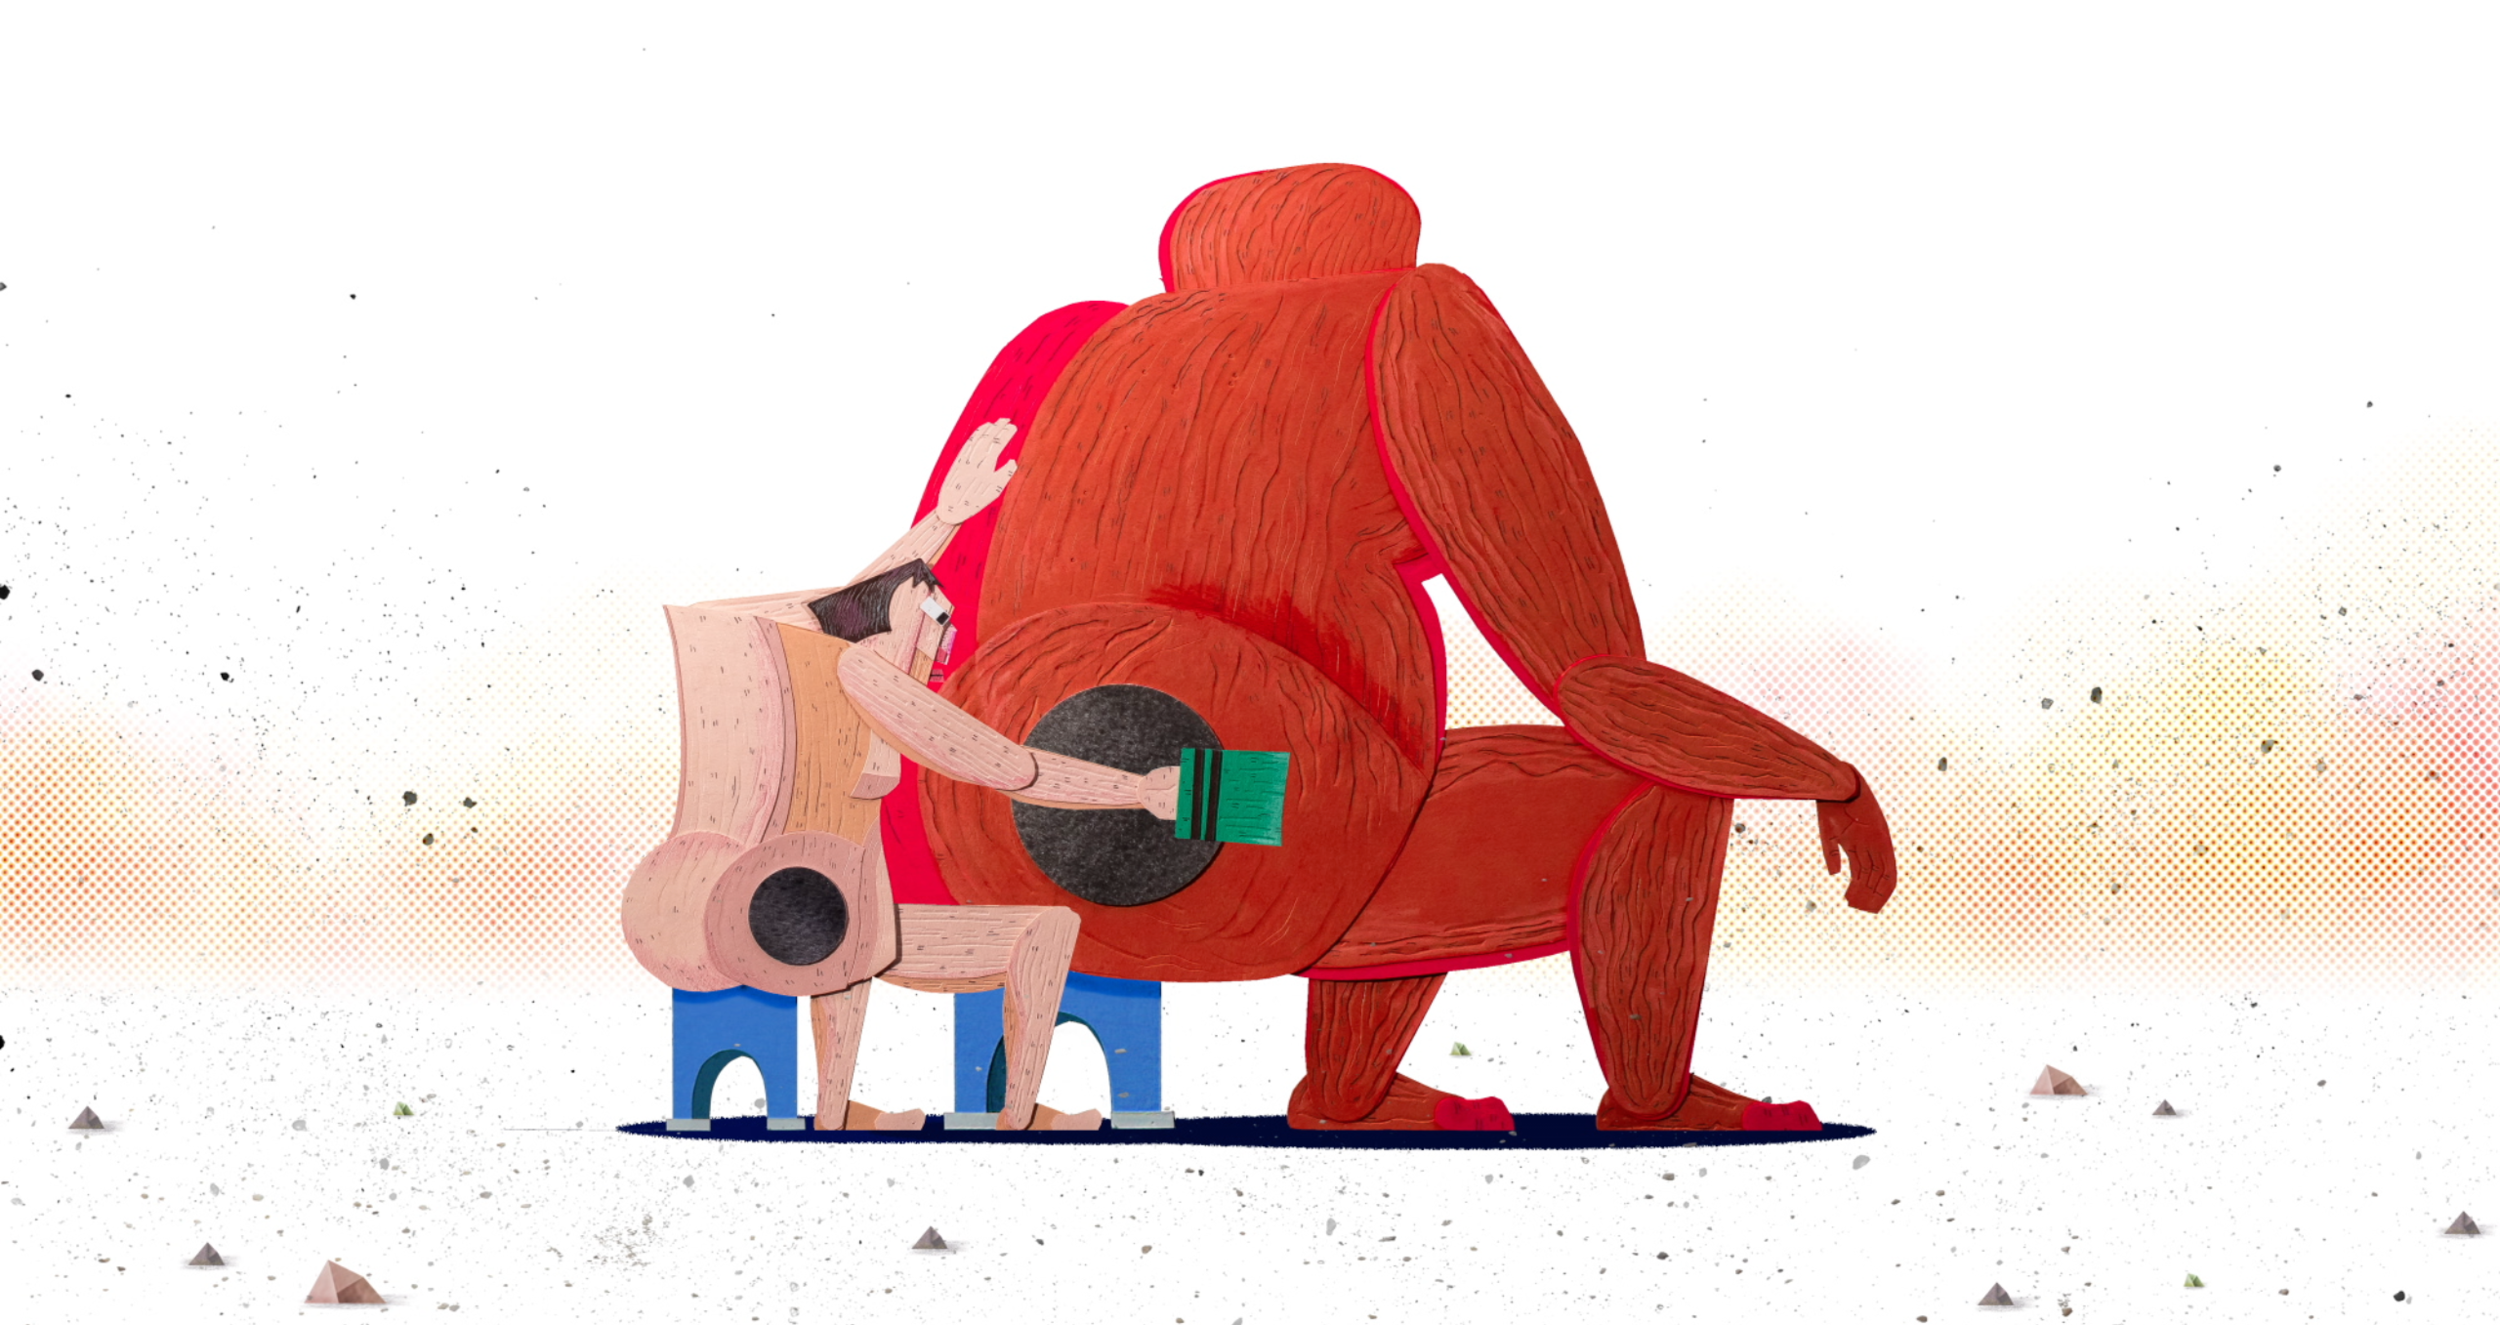 Jeom   Director/Writer: Kangmin Kim // Producer: Open the Portal // USA   A father and son both have the same birthmark on their butt. Believing that the two birthmarks are connected, the son scrubs his father's birthmark to remove it - but he just can't seem to get rid of it.